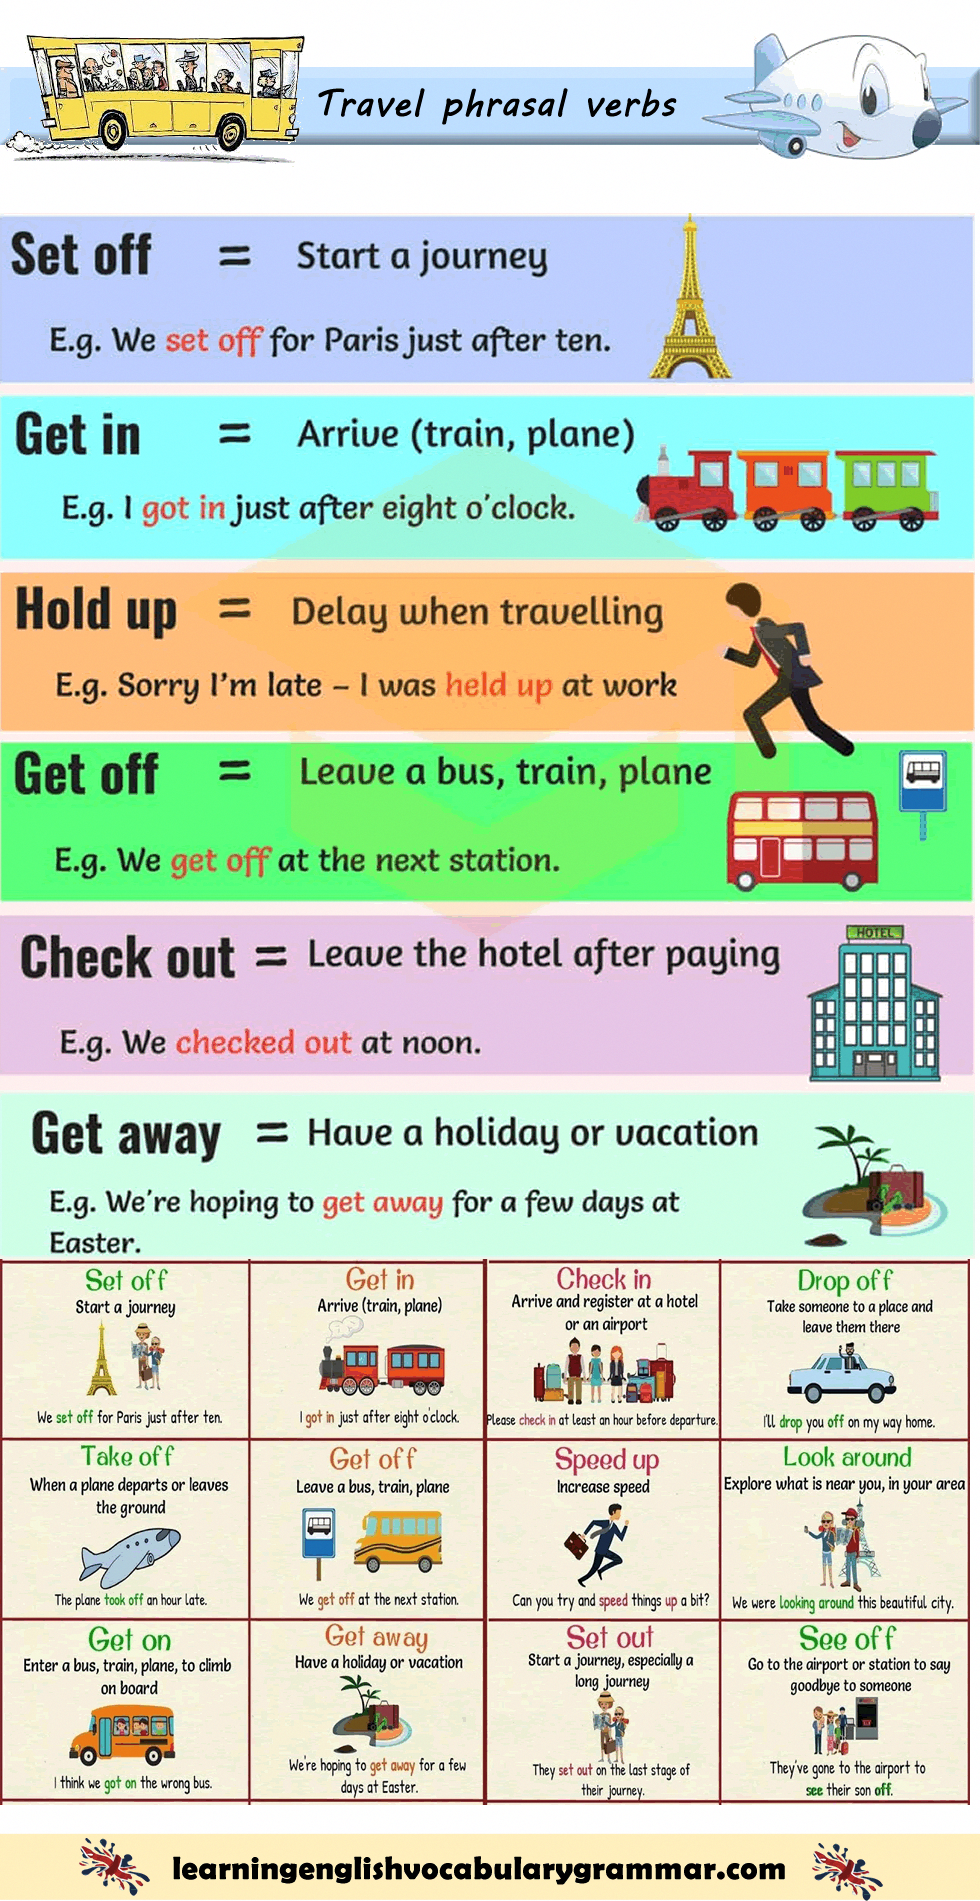 List Of Phrasal Verbs And Phrases For Travel With Examples And Pictures Apprendreanglais A Learn English Vocabulary English Grammar English Teaching Materials [ 1901 x 980 Pixel ]